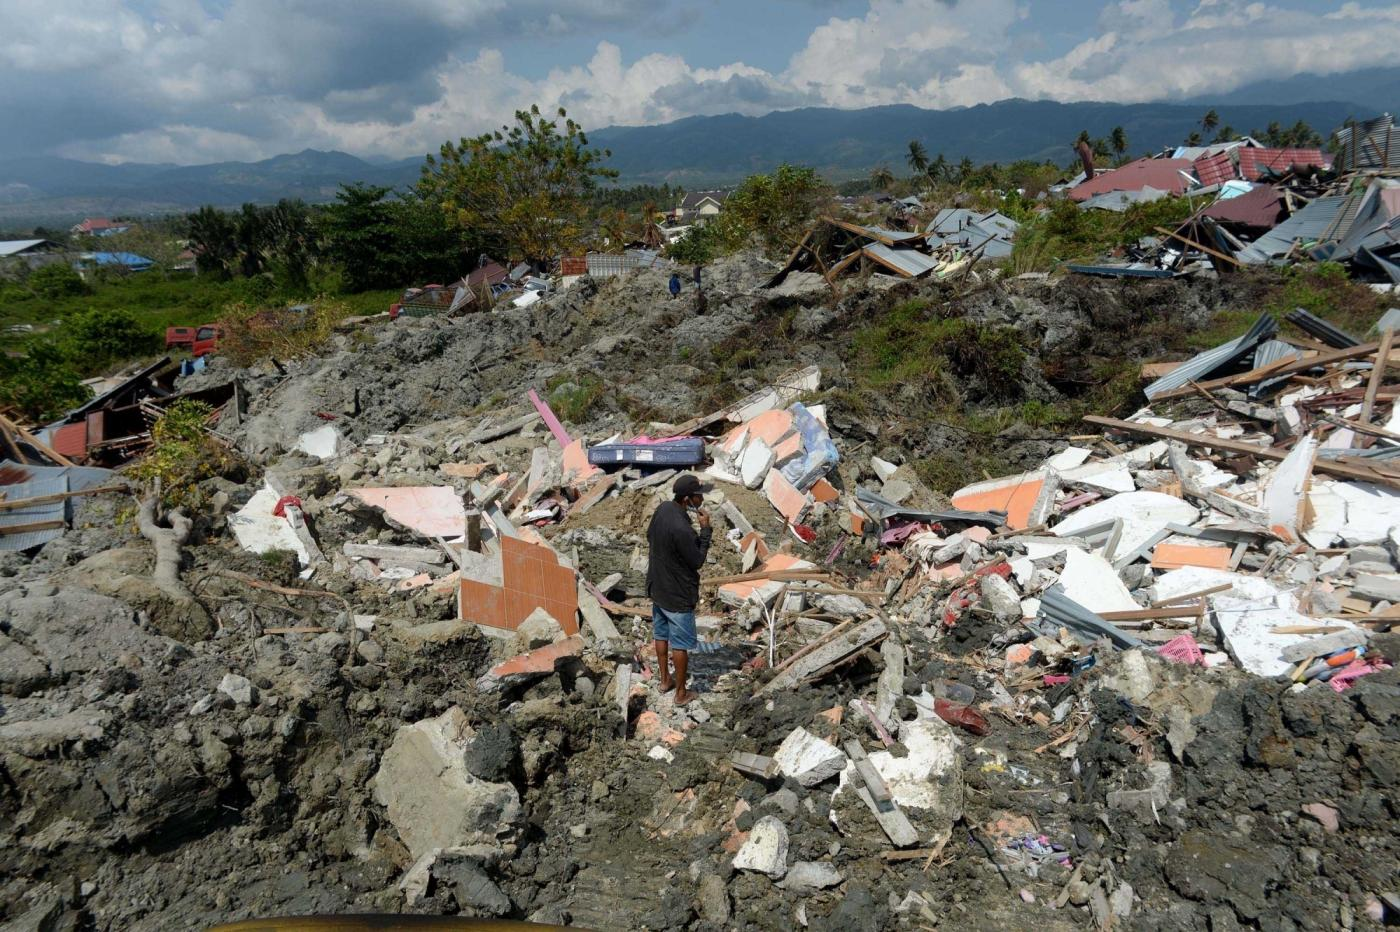 PALU, Oct. 3, 2018 (Xinhua) -- A local resident stands on the ruins at Petobo, in Palu, Central Sulawesi, Indonesia. Oct. 3, 2018. The death toll from Indonesia's multiple earthquakes and an ensuing tsunami jumped to 1,407 on Wednesday, the country's disaster management agency said. (Xinhua/Agung Kuncahya B./IANS) by .